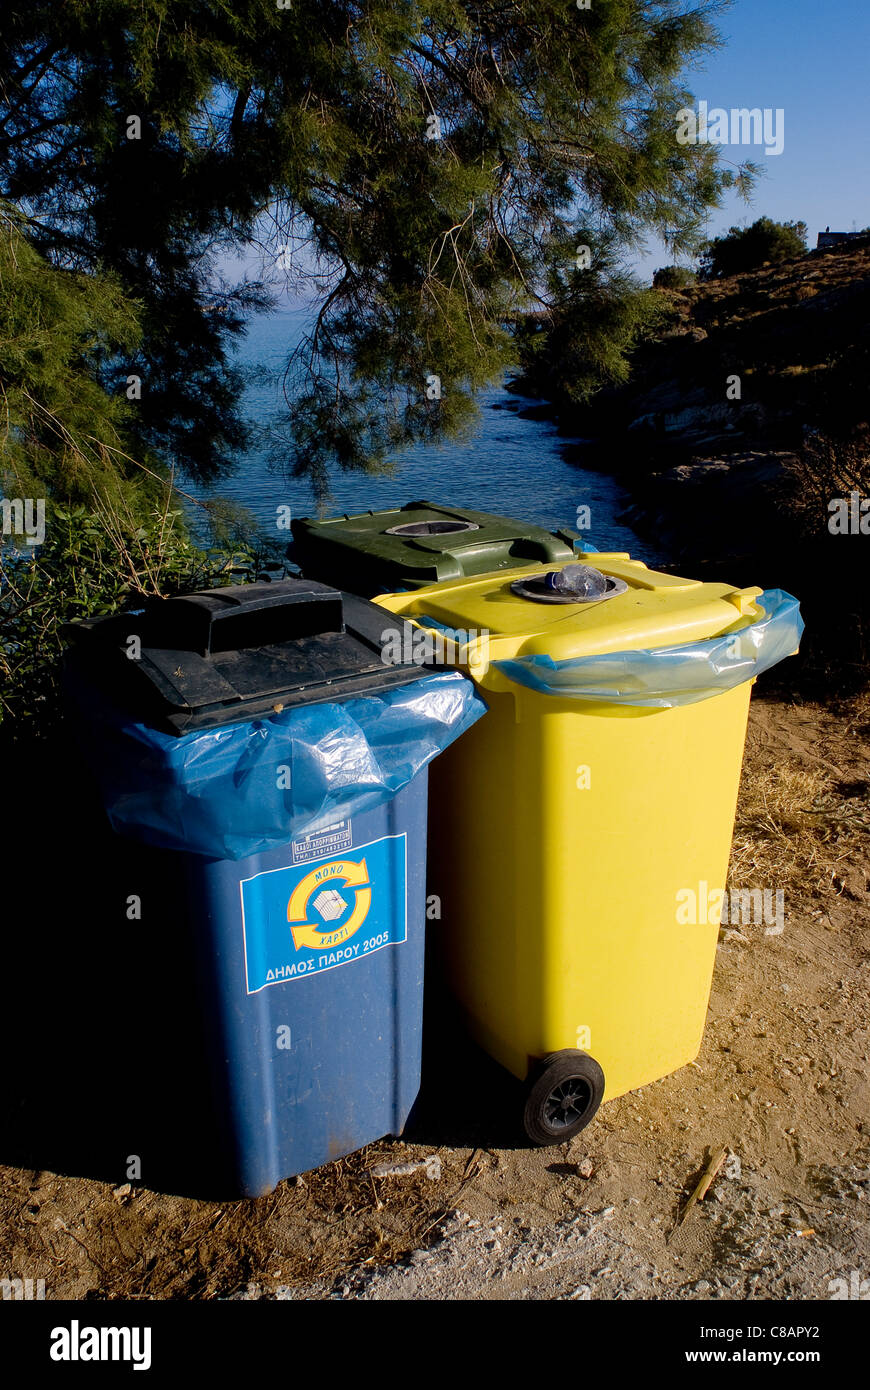 Trash cans by the beach - Stock Image